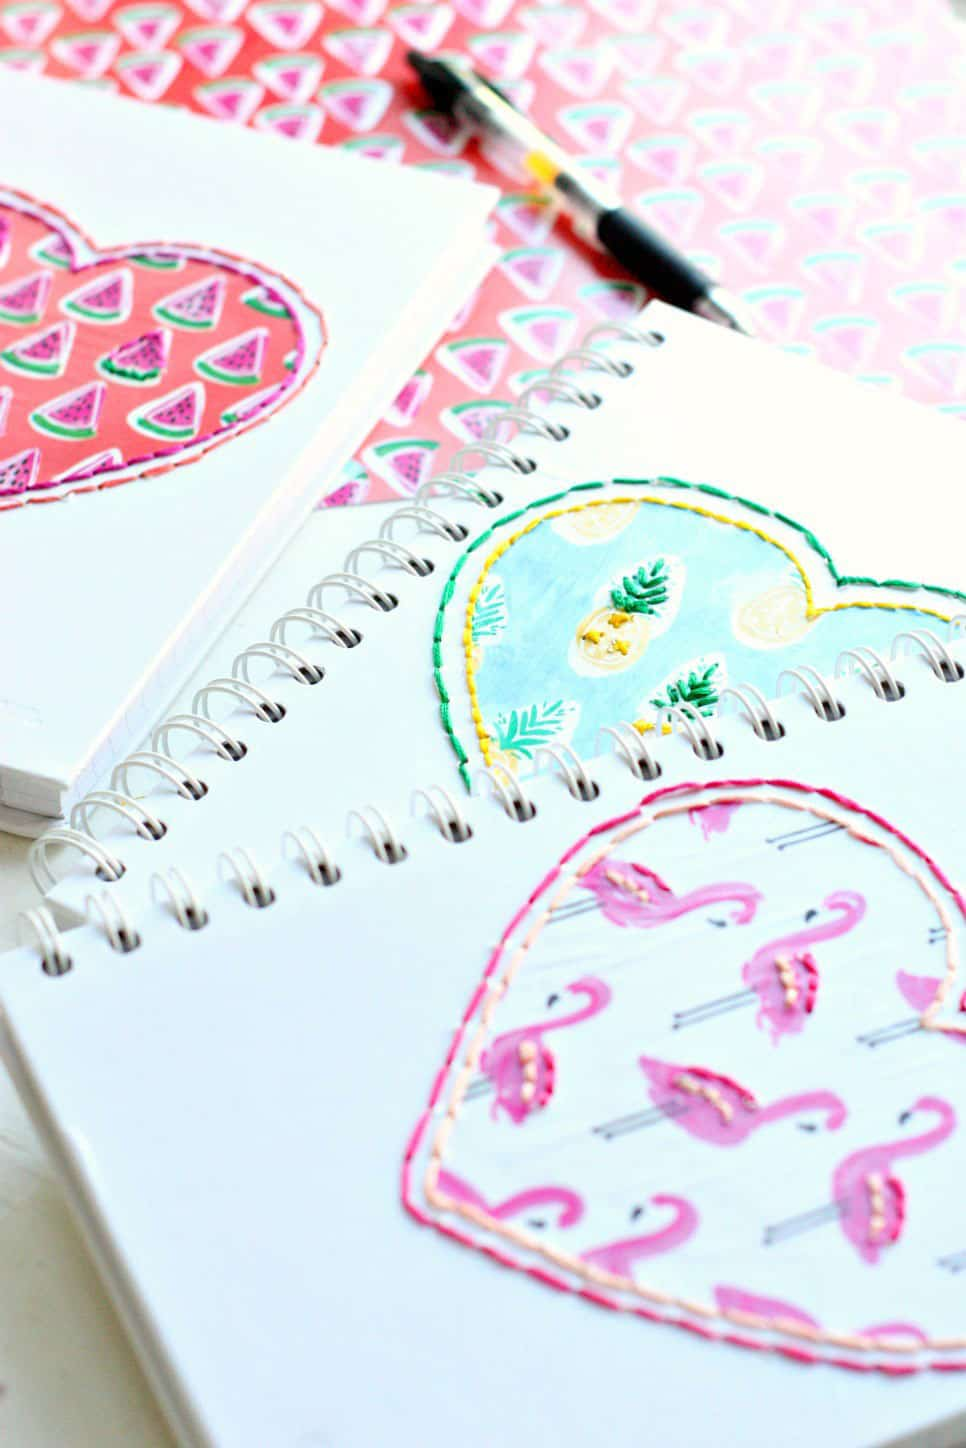 DIY Stitched Notebooks